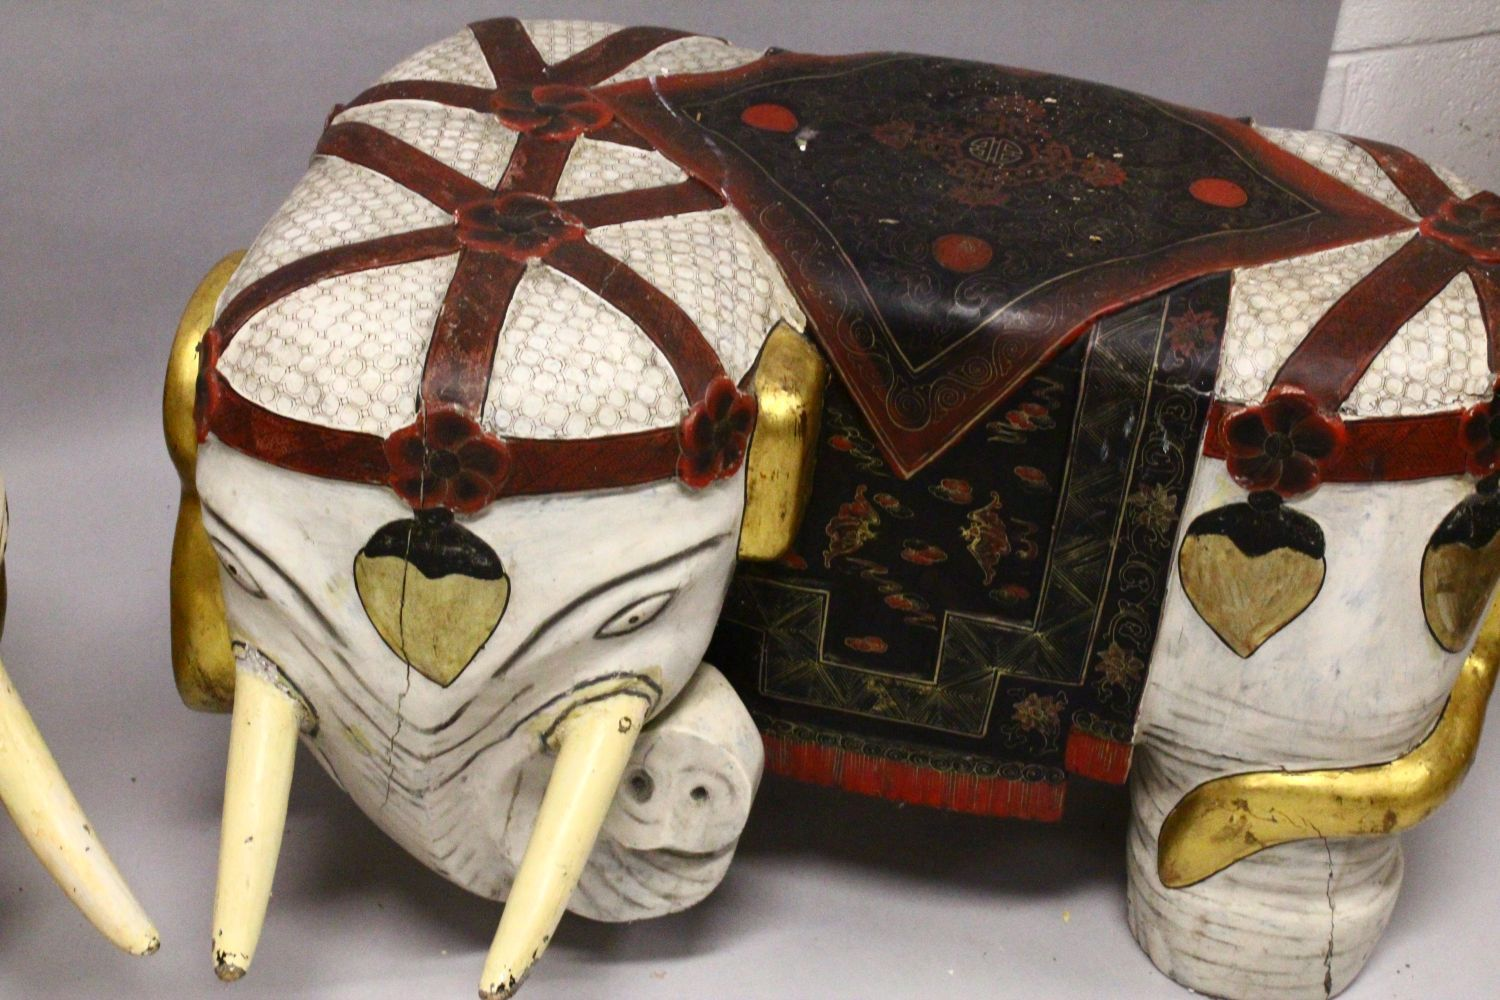 A PAIR OF LARGE 19TH CENTURY CHINESE HARDWOOD DECORATED ELEPHANT FORMED SEATS, The mirrored pair - Image 5 of 9